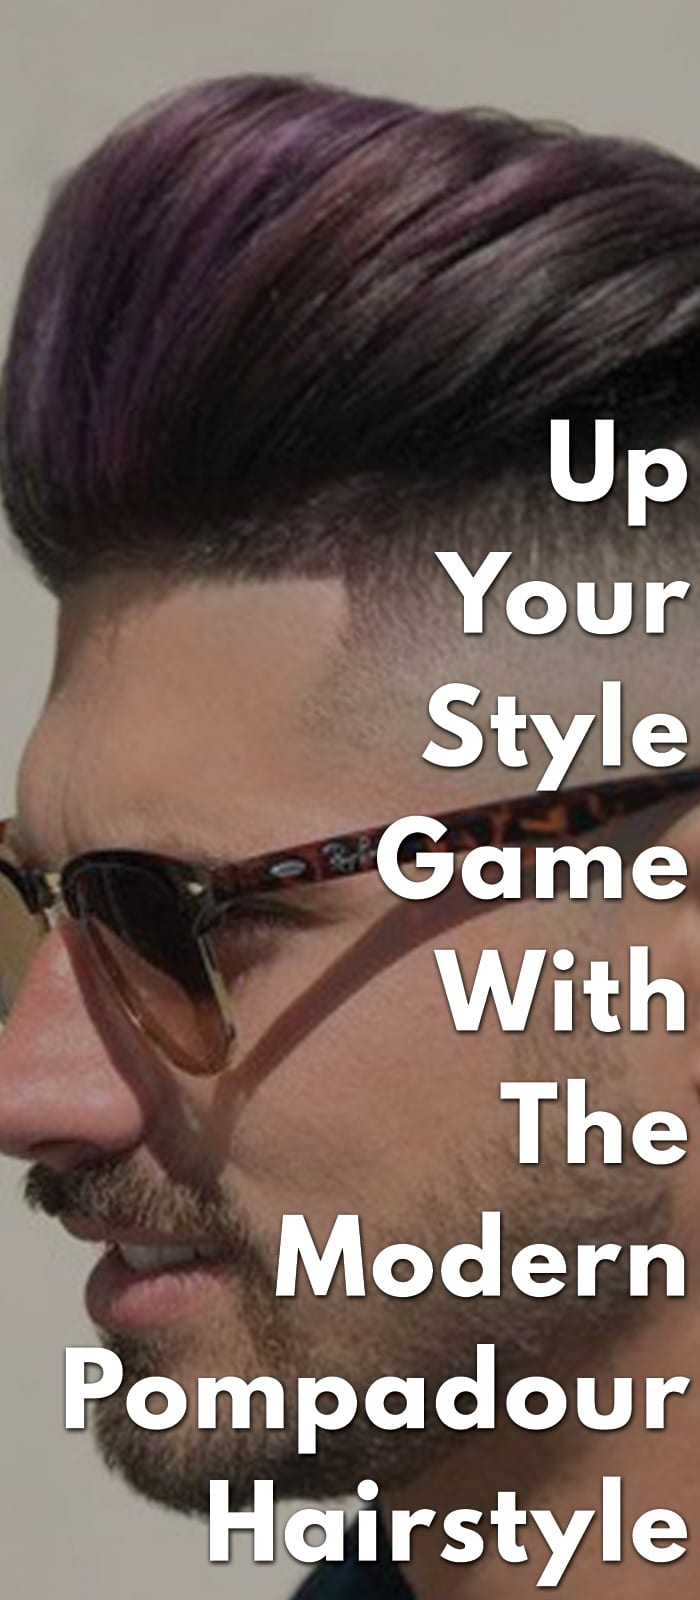 Up Your Style Game With The Modern Pompadour